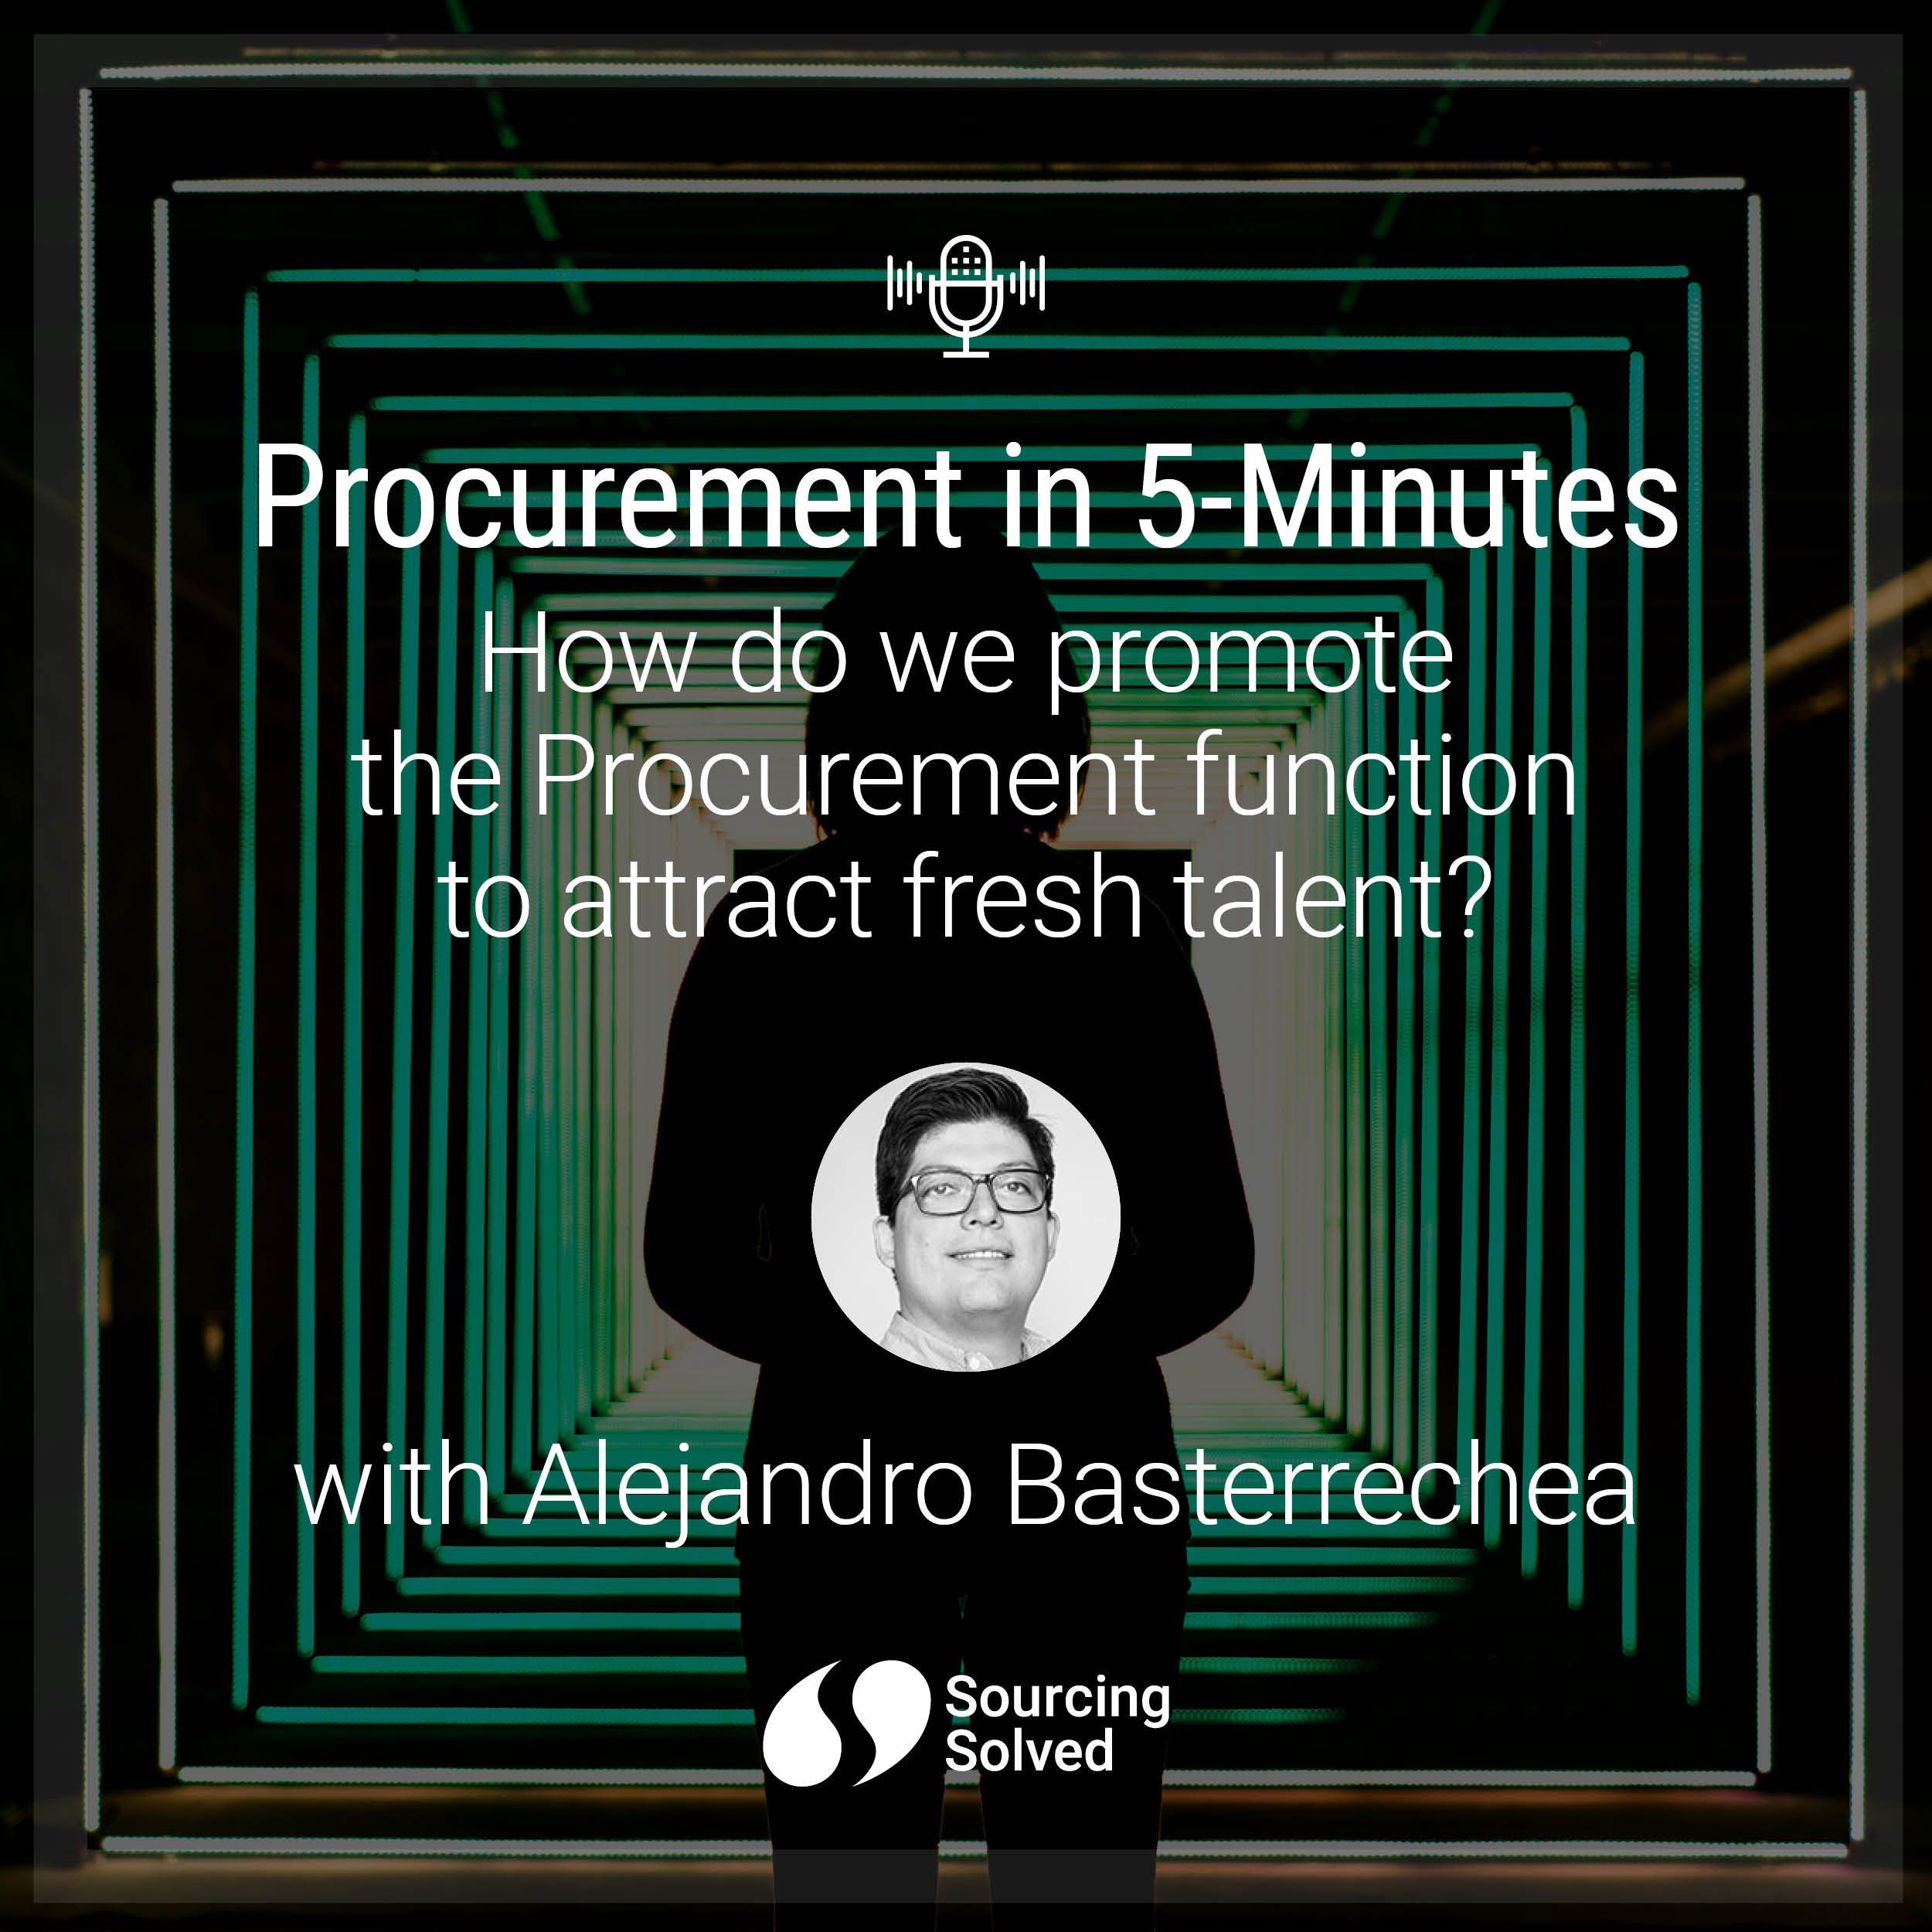 Procurement in 5-Minutes: How do we promote the Procurement function to attract fresh talent